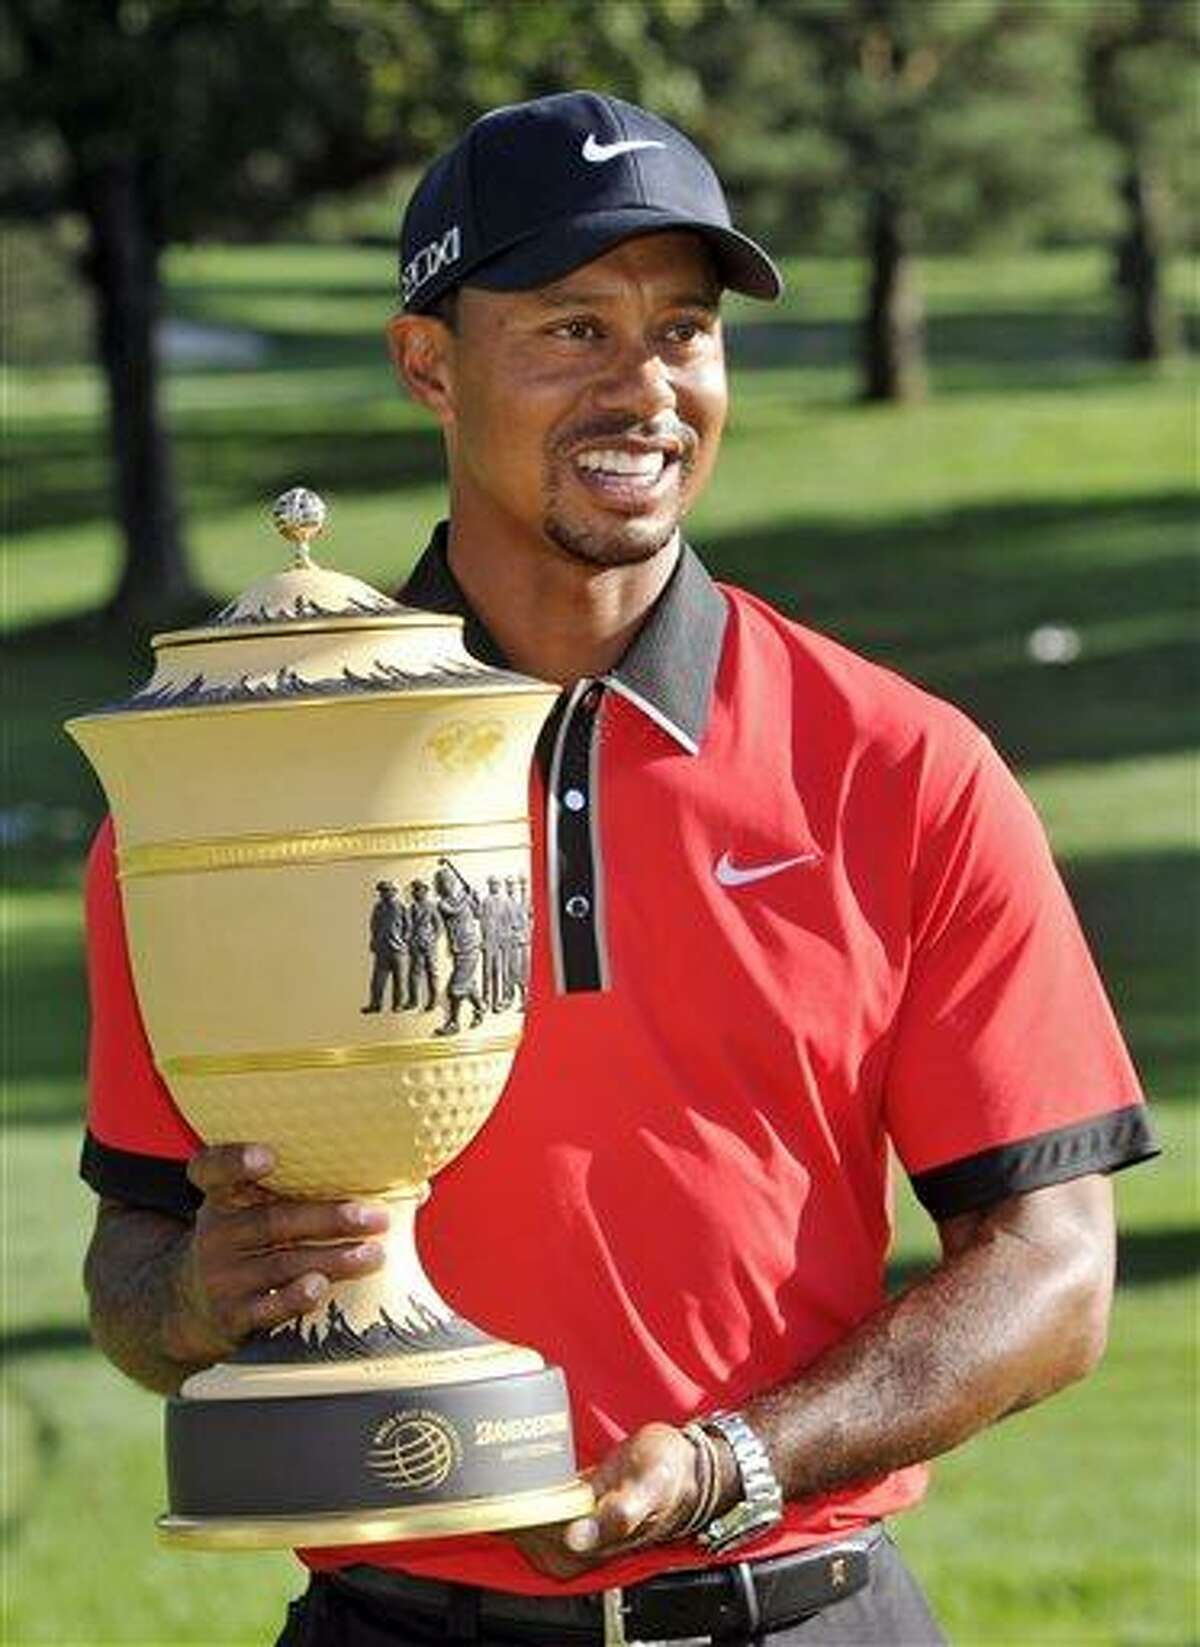 Tiger Woods holds the trophy after winning the Bridgestone Invitational golf tournament Sunday, Aug. 4, 2013 at Firestone Country Club in Akron, Ohio. (AP Photo/Phil Long)